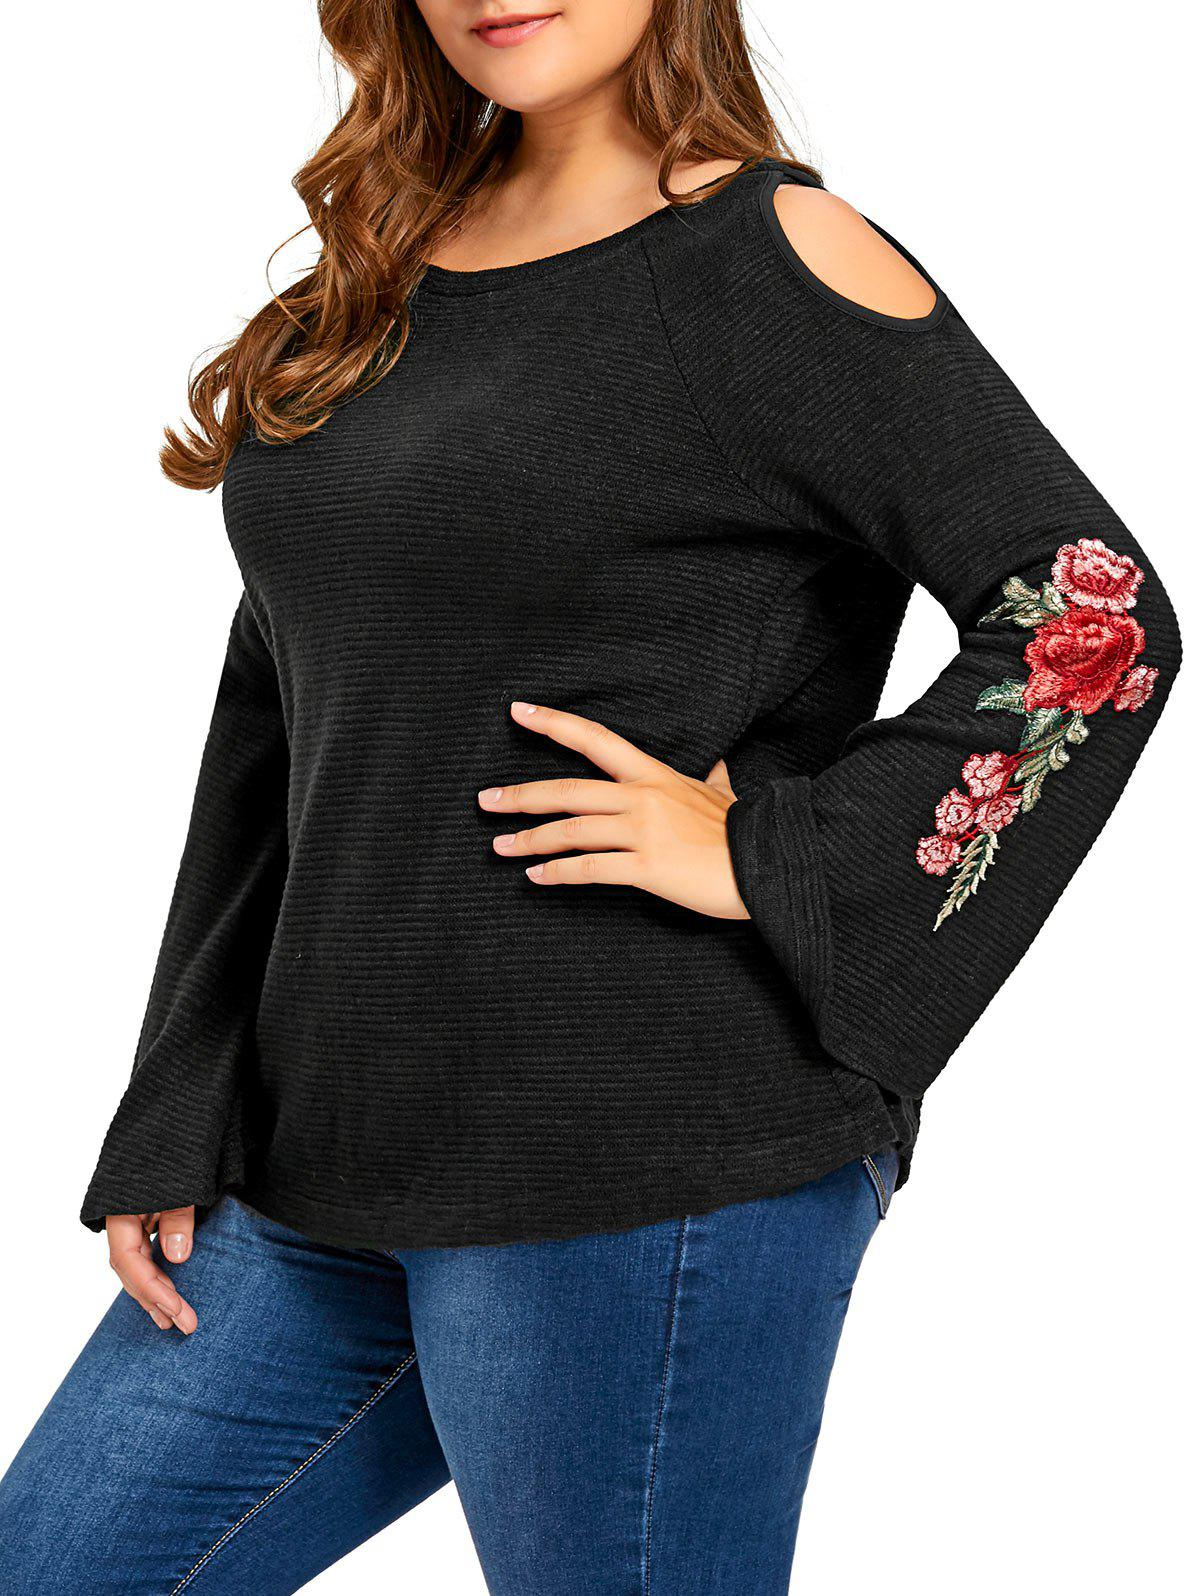 Plus Size Floral Embroidered Cold Shoulder Flare Sleeve T-shirt - BLACK 3XL